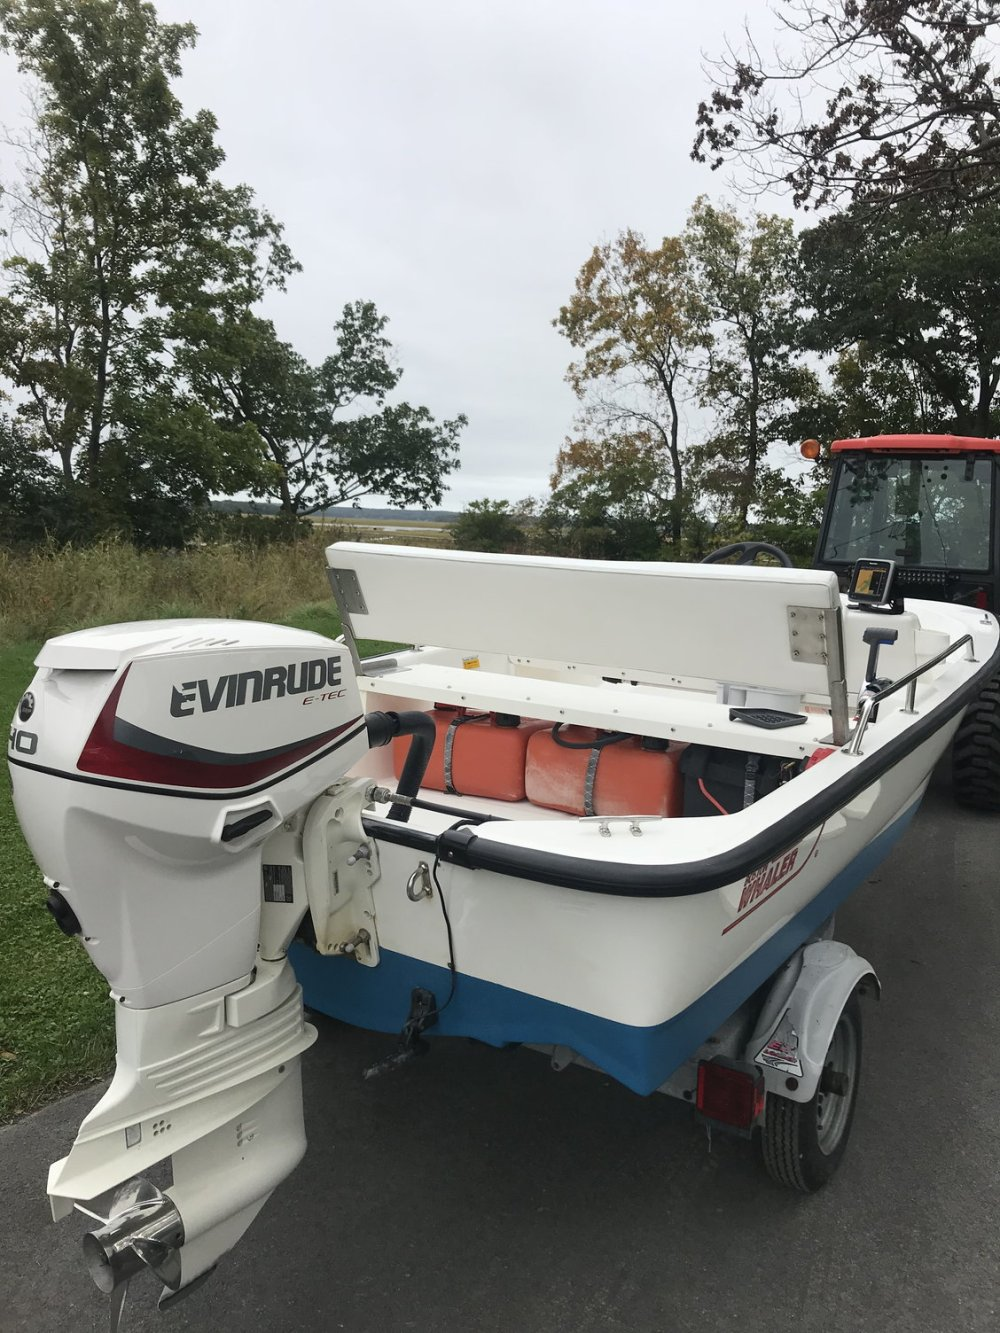 medium resolution of new evinrude e tec 40 with power trim tilt start new bottom paint after hull restored new stainless folding seat back rest